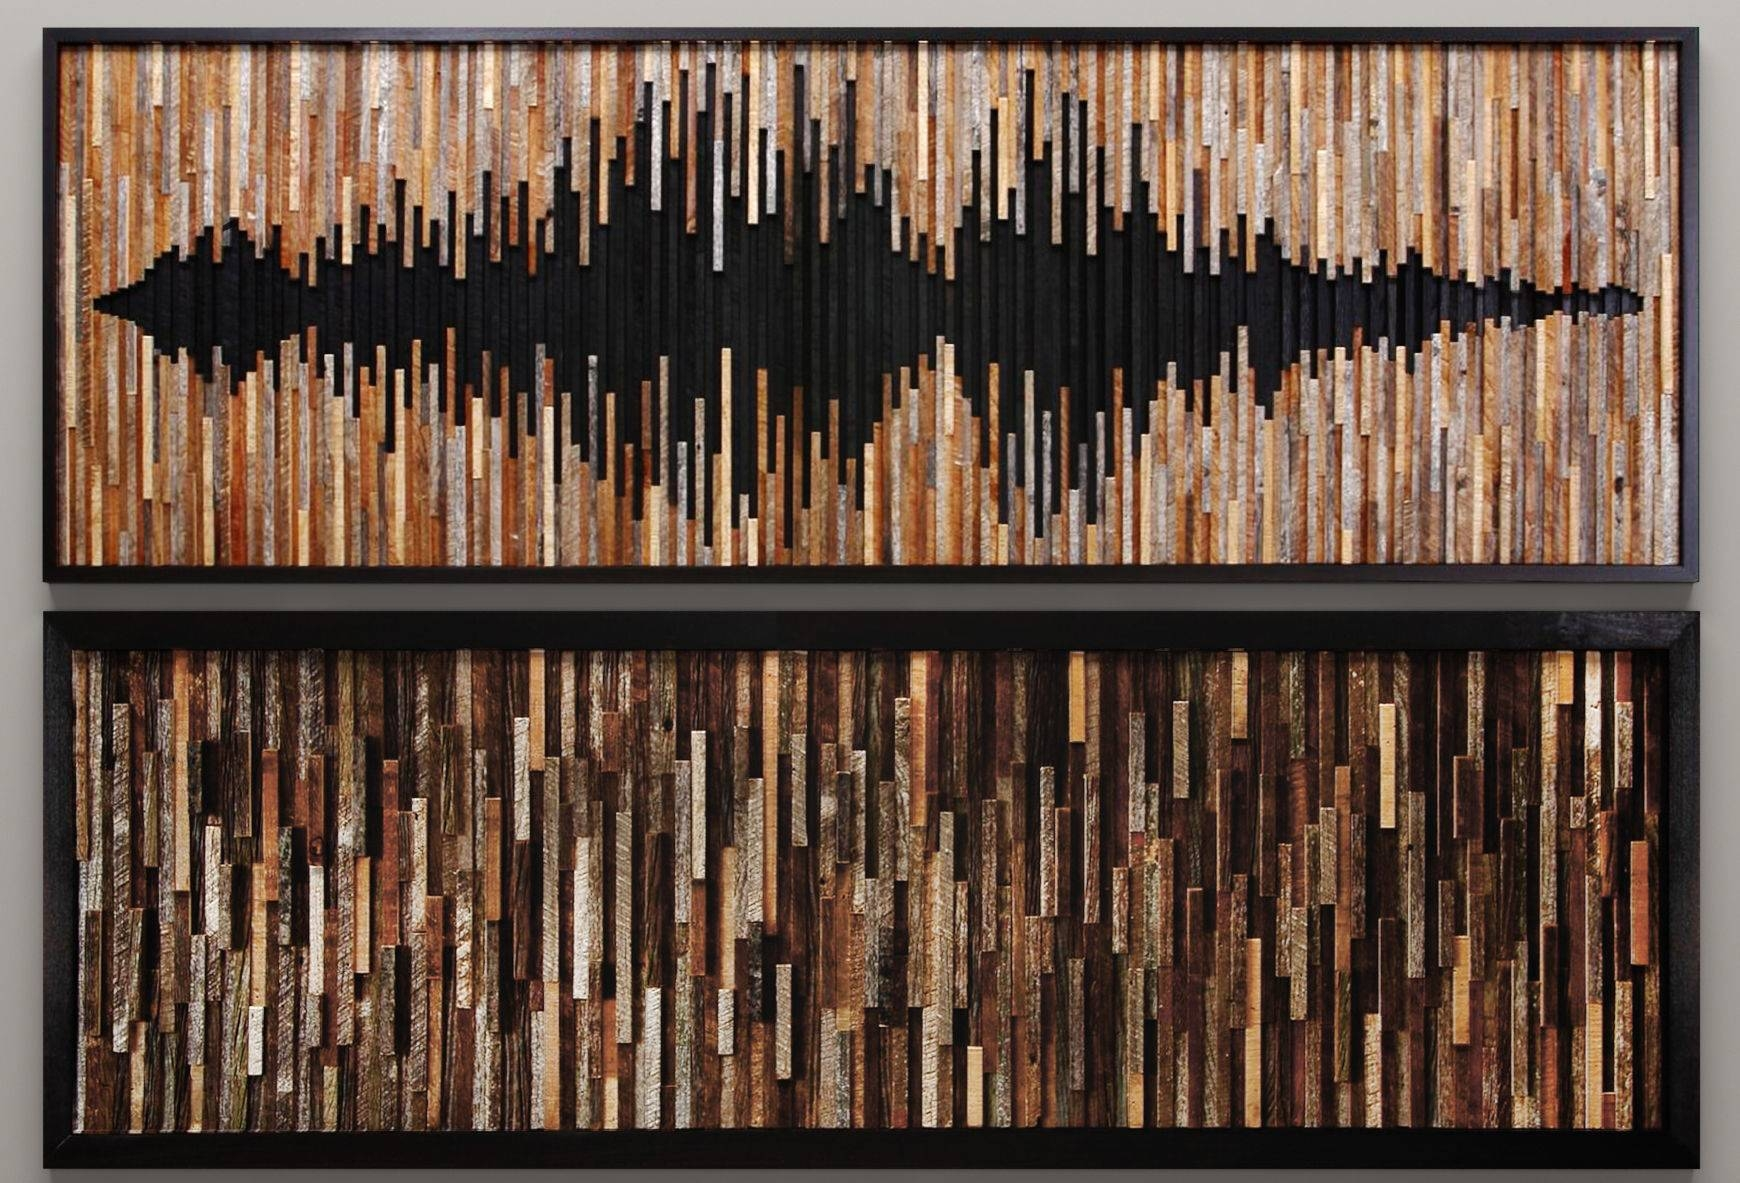 Wood Wall Art 46 3D Model | Cgtrader With Regard To Newest Wood 3D Wall Art (View 18 of 20)